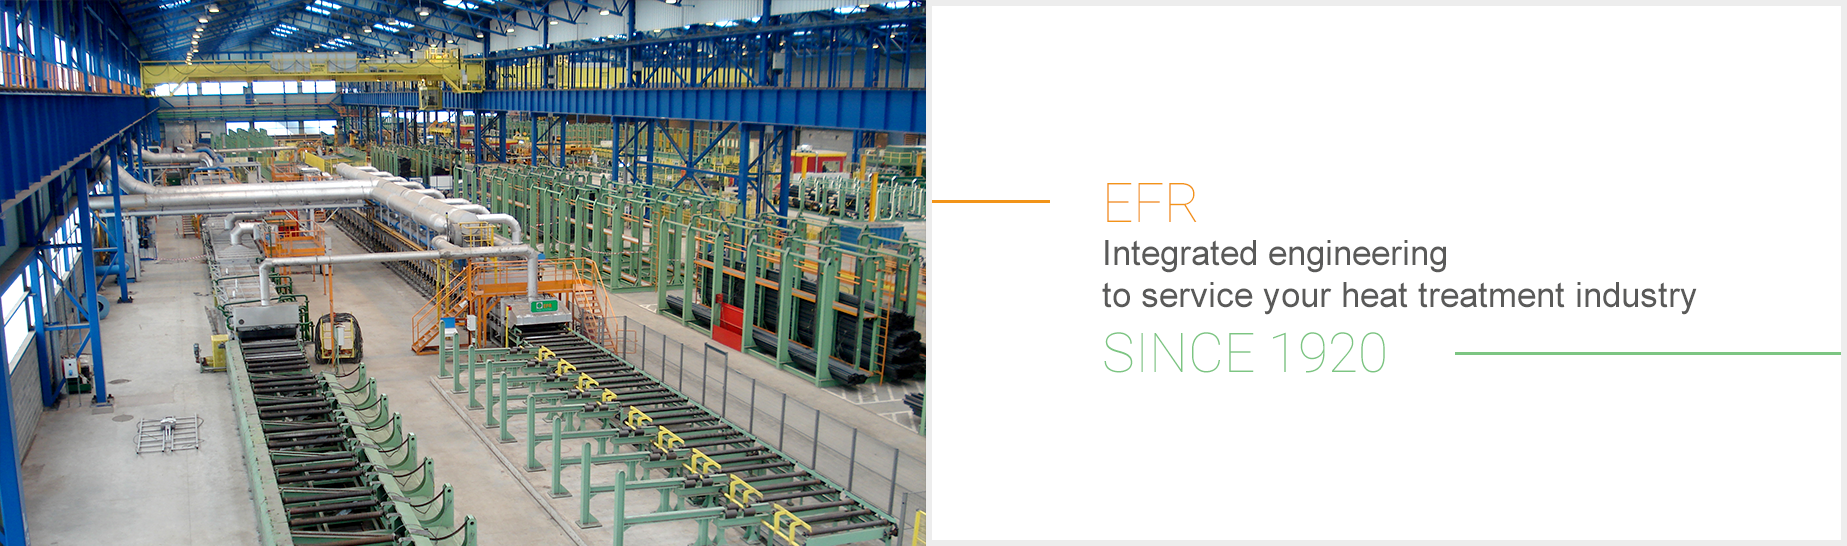 Integrated engineering to service your heat treatment industry